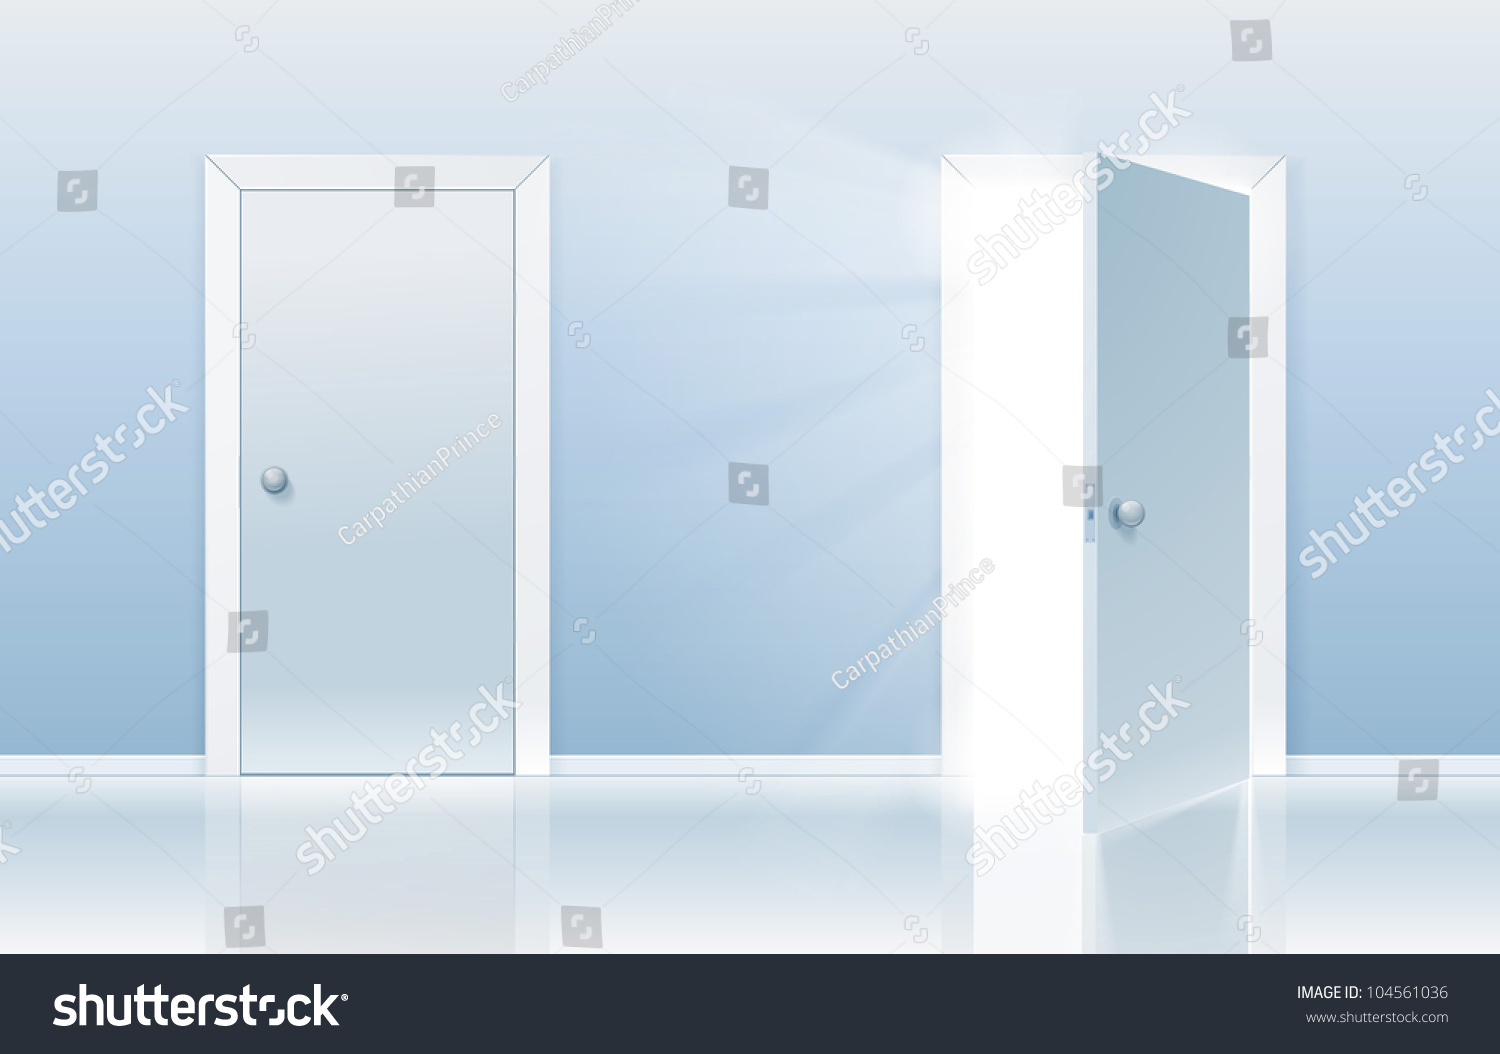 Open door closed door - Open And Closed Door Concept One Door Is Closed And The Other One Is Opening